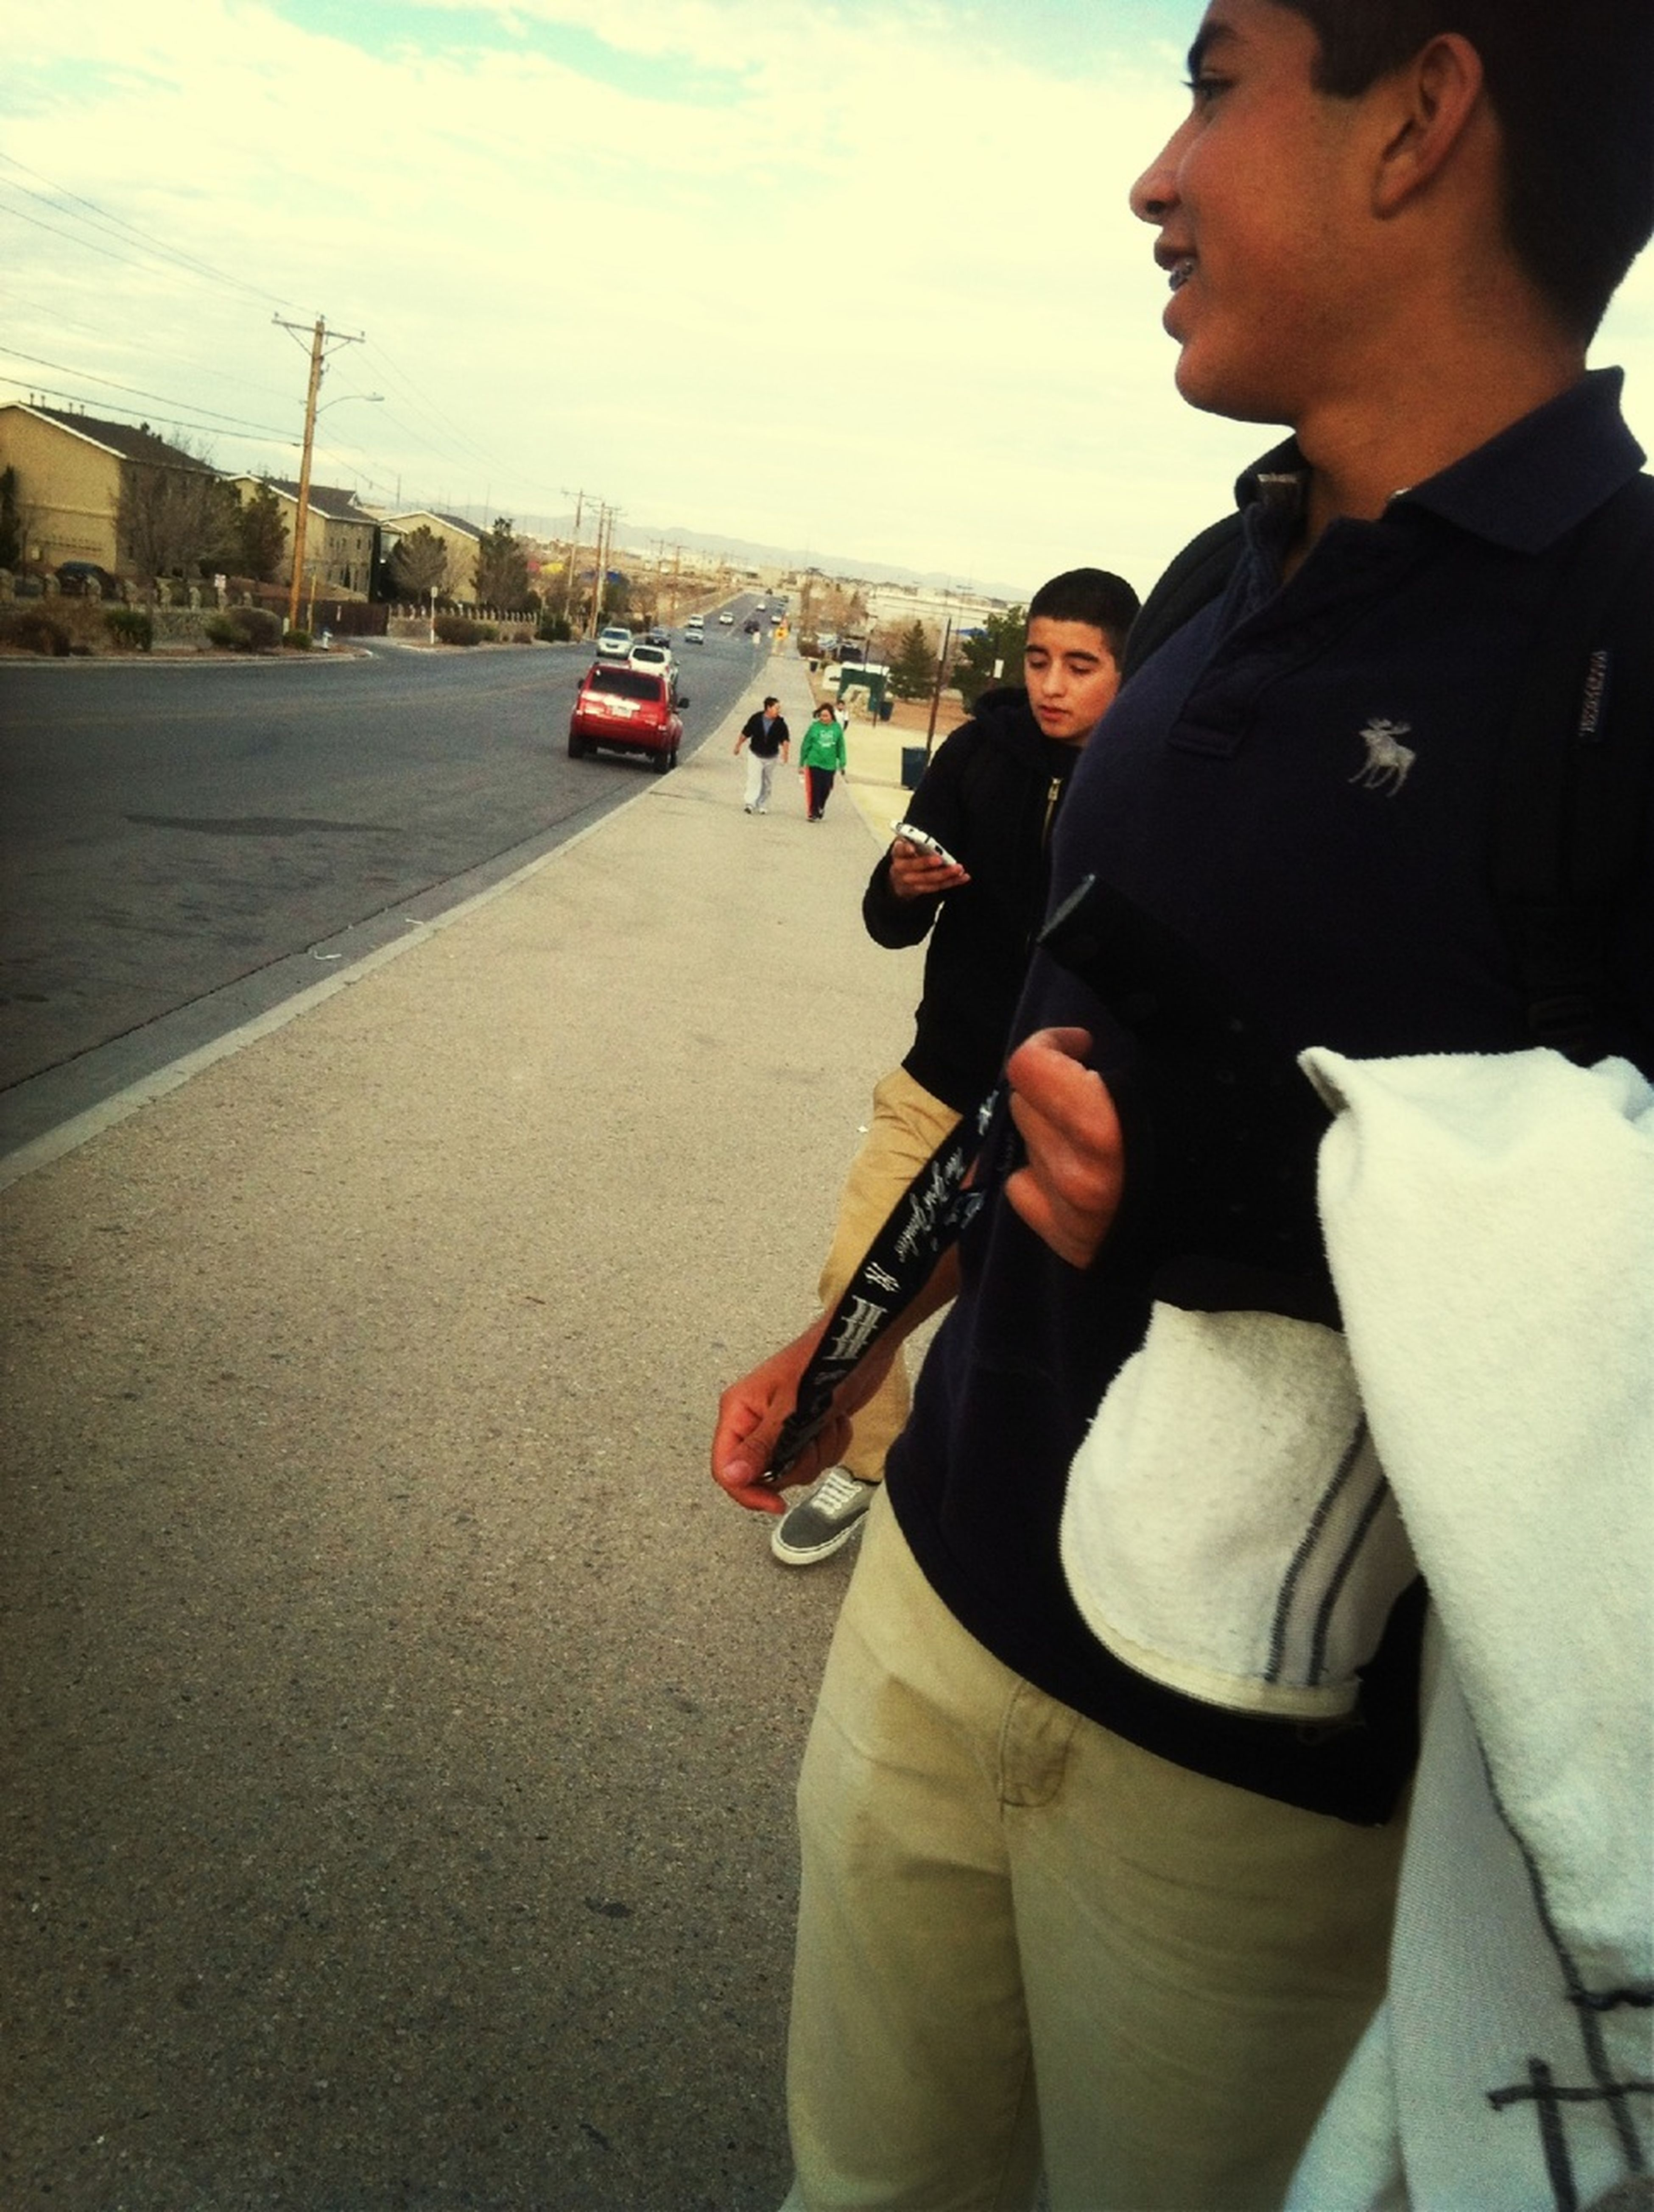 Walked Home With These Kids -.-